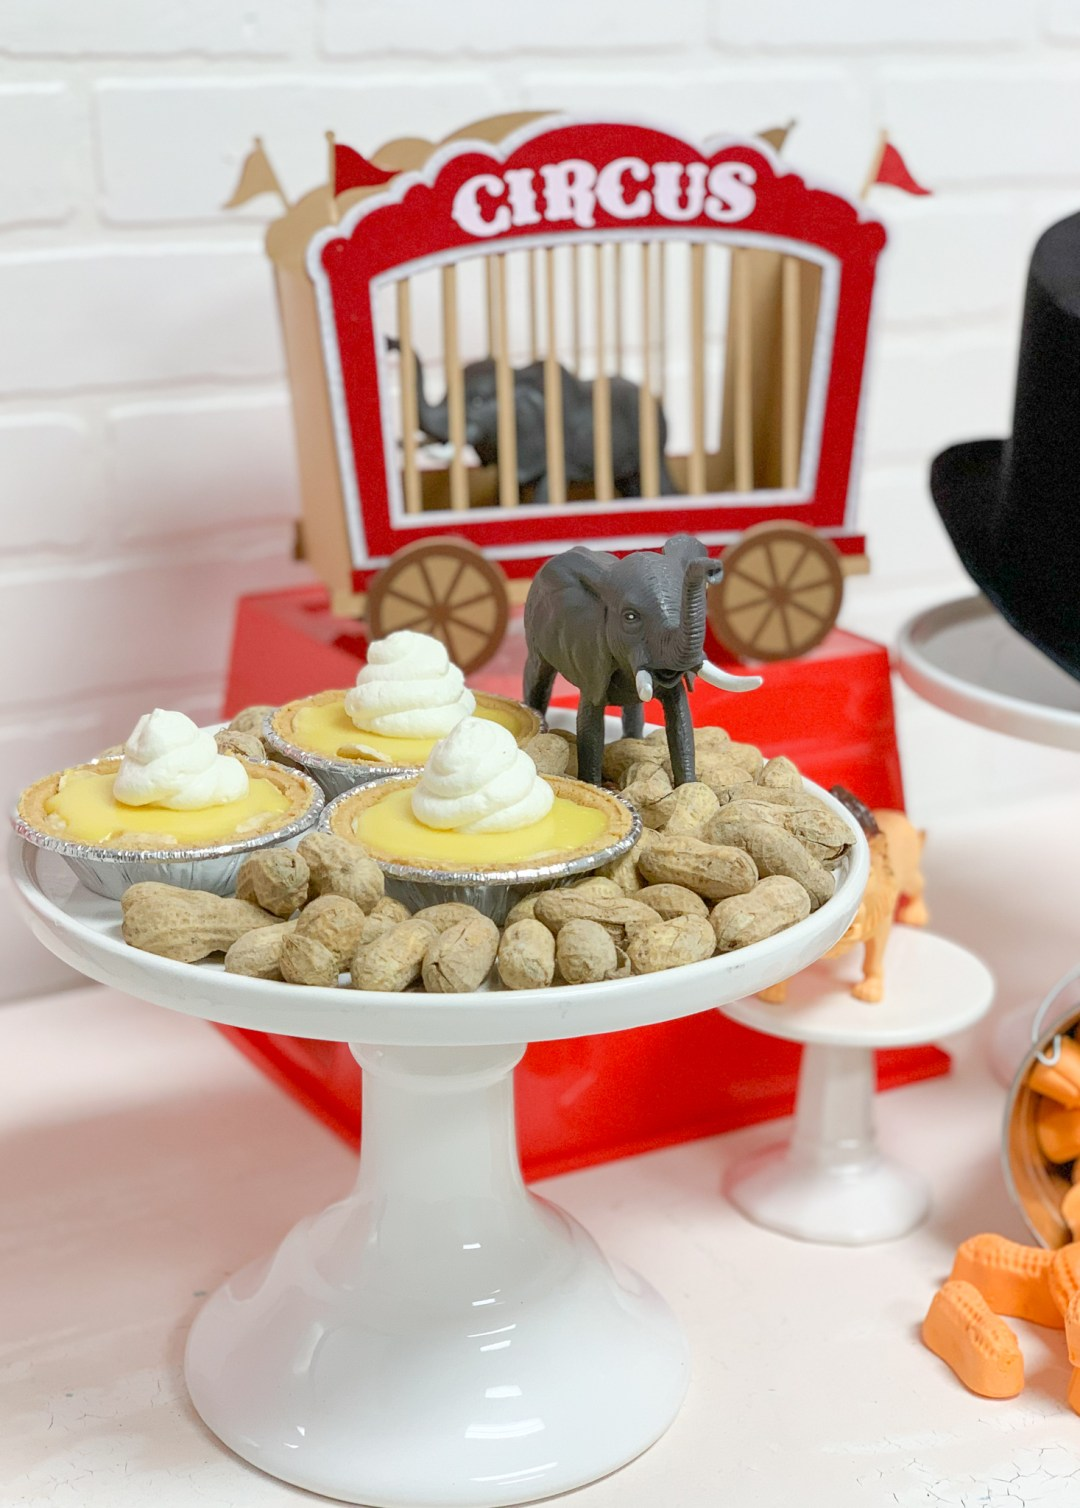 Banana Cream Pie Minis, Elephant, Peanuts, Circus Train